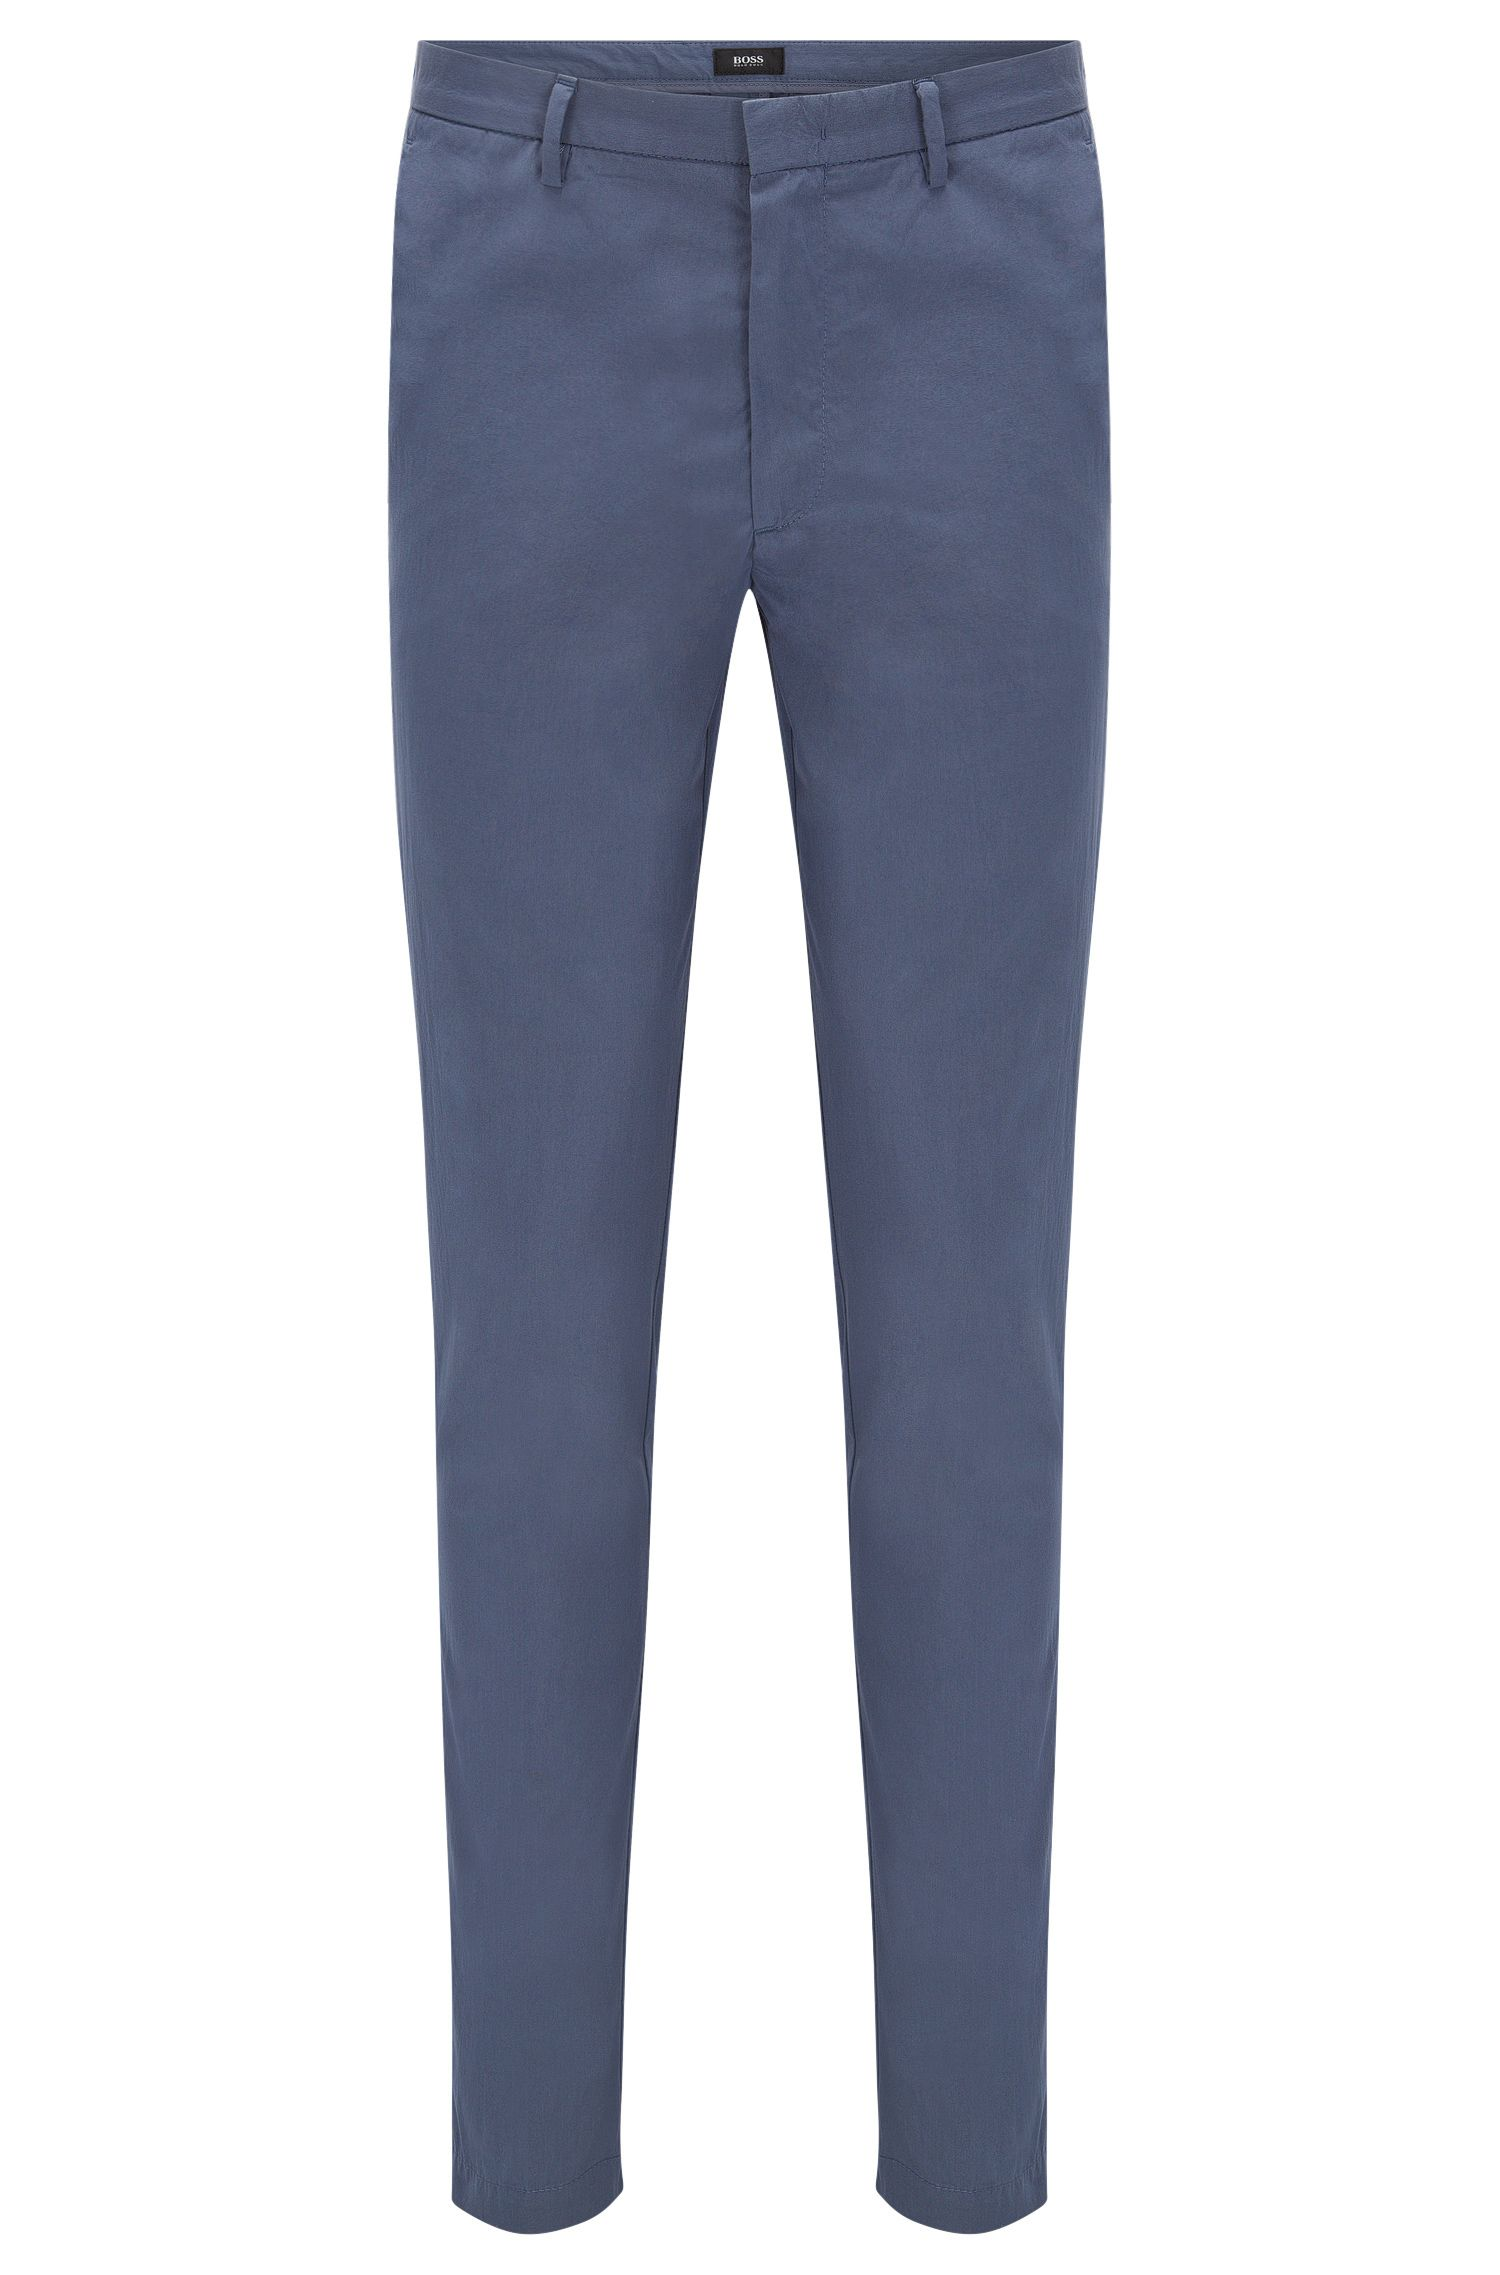 'Kaito4-W' | Slim Fit, Stretch Cotton Blend Chino Pants